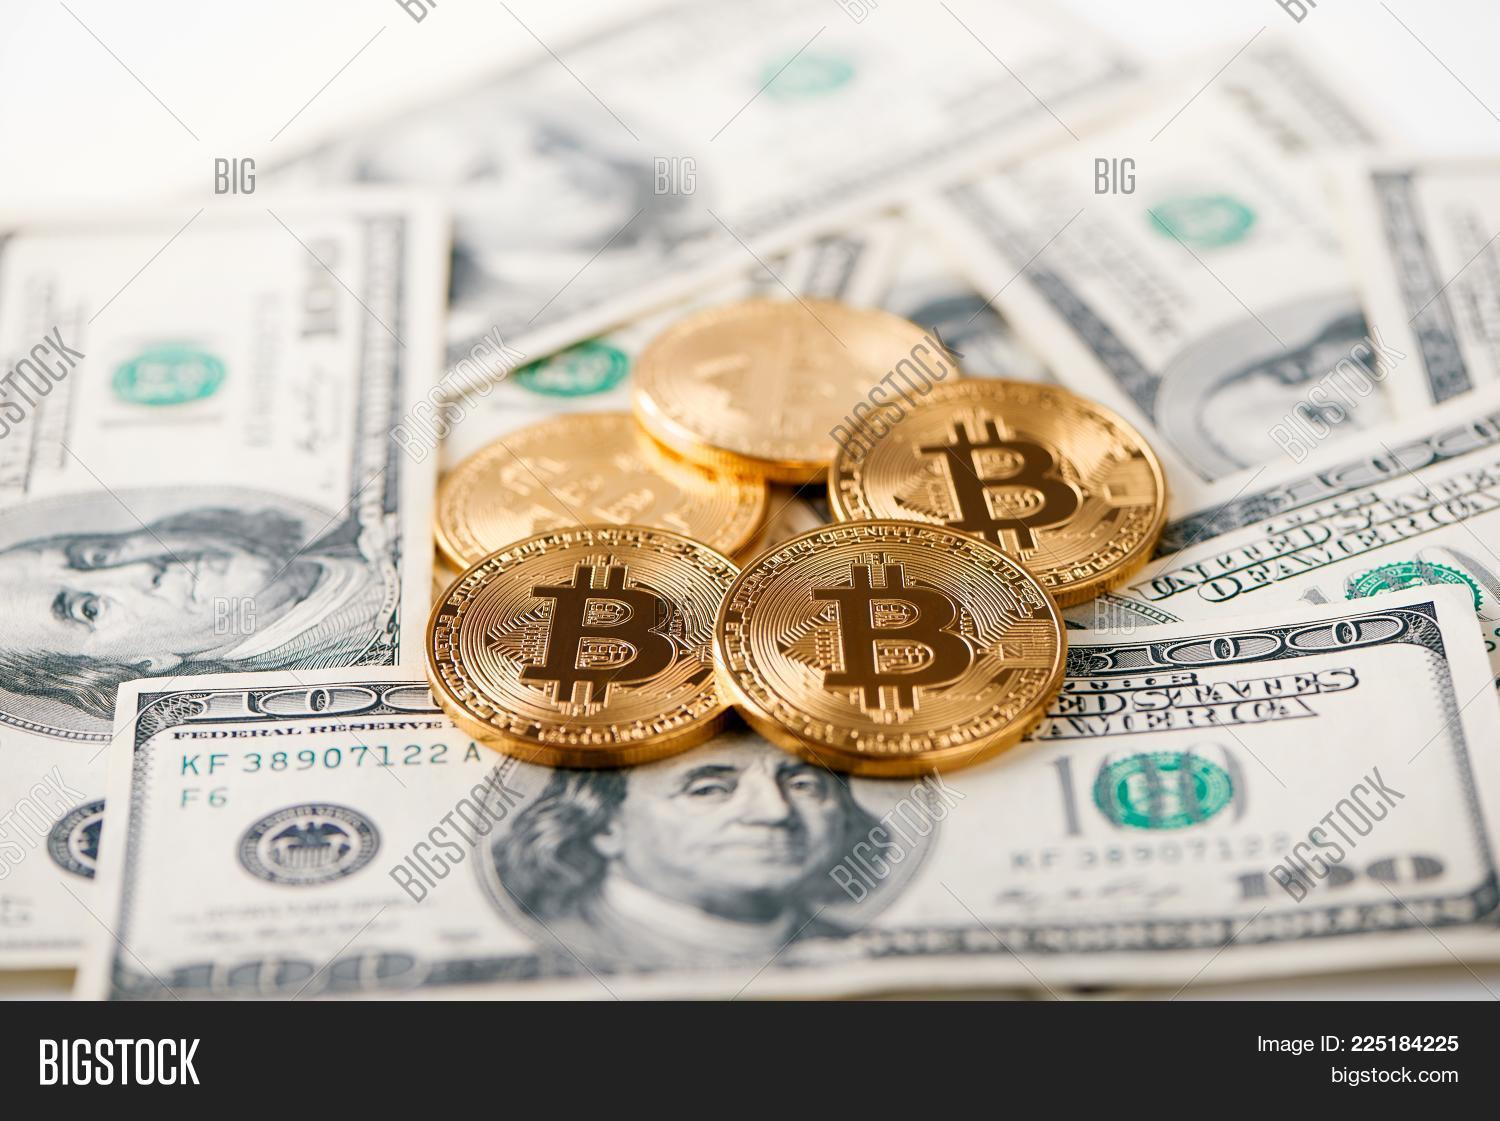 Shiny Golden Bitcoins Lying On Hundred Dollar Bills Presenting Gest Cryptocurrency And New Futuristic Form Of